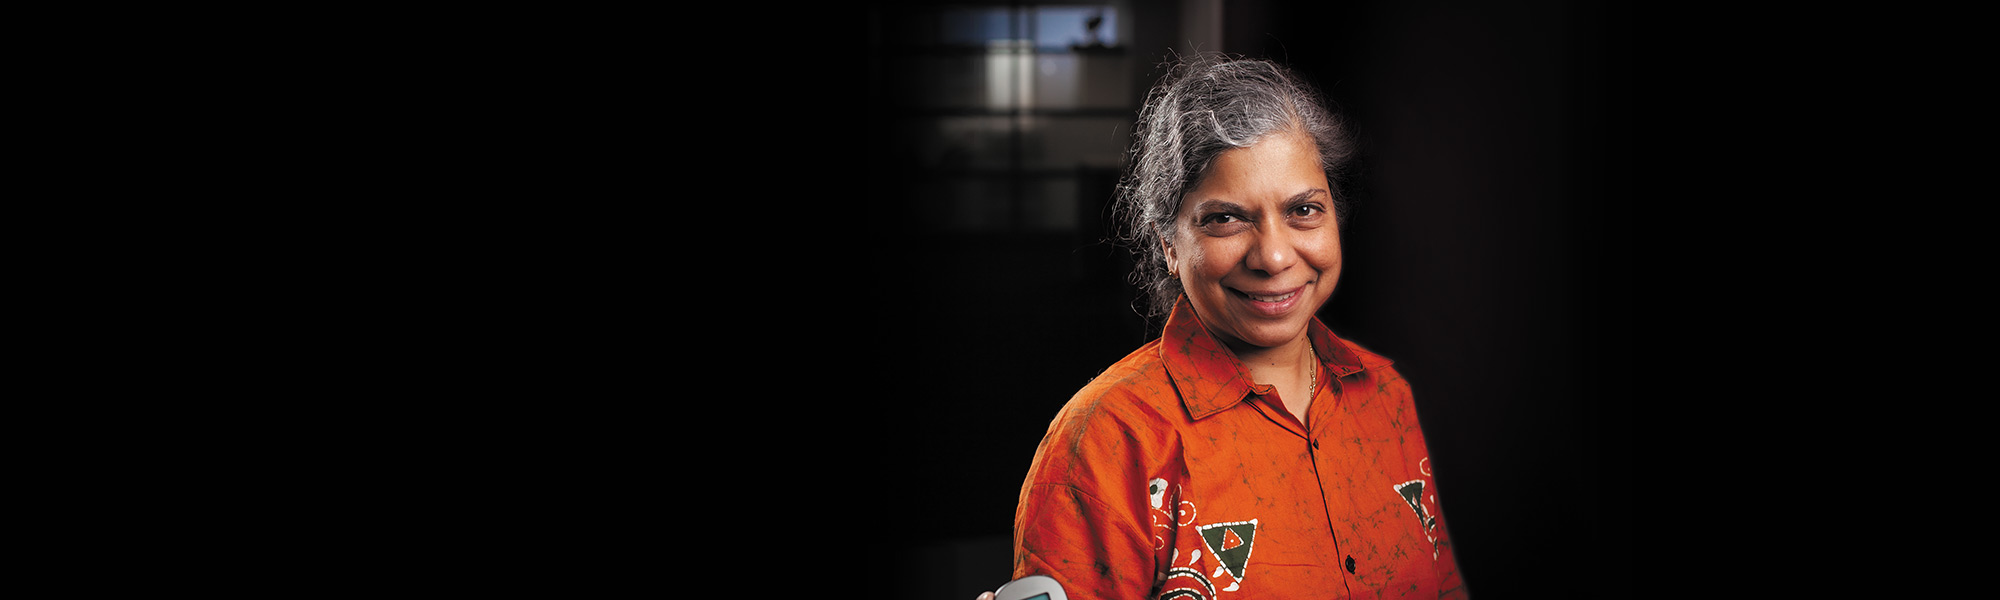 Professor Nilmini Wickramasinghe smiling.